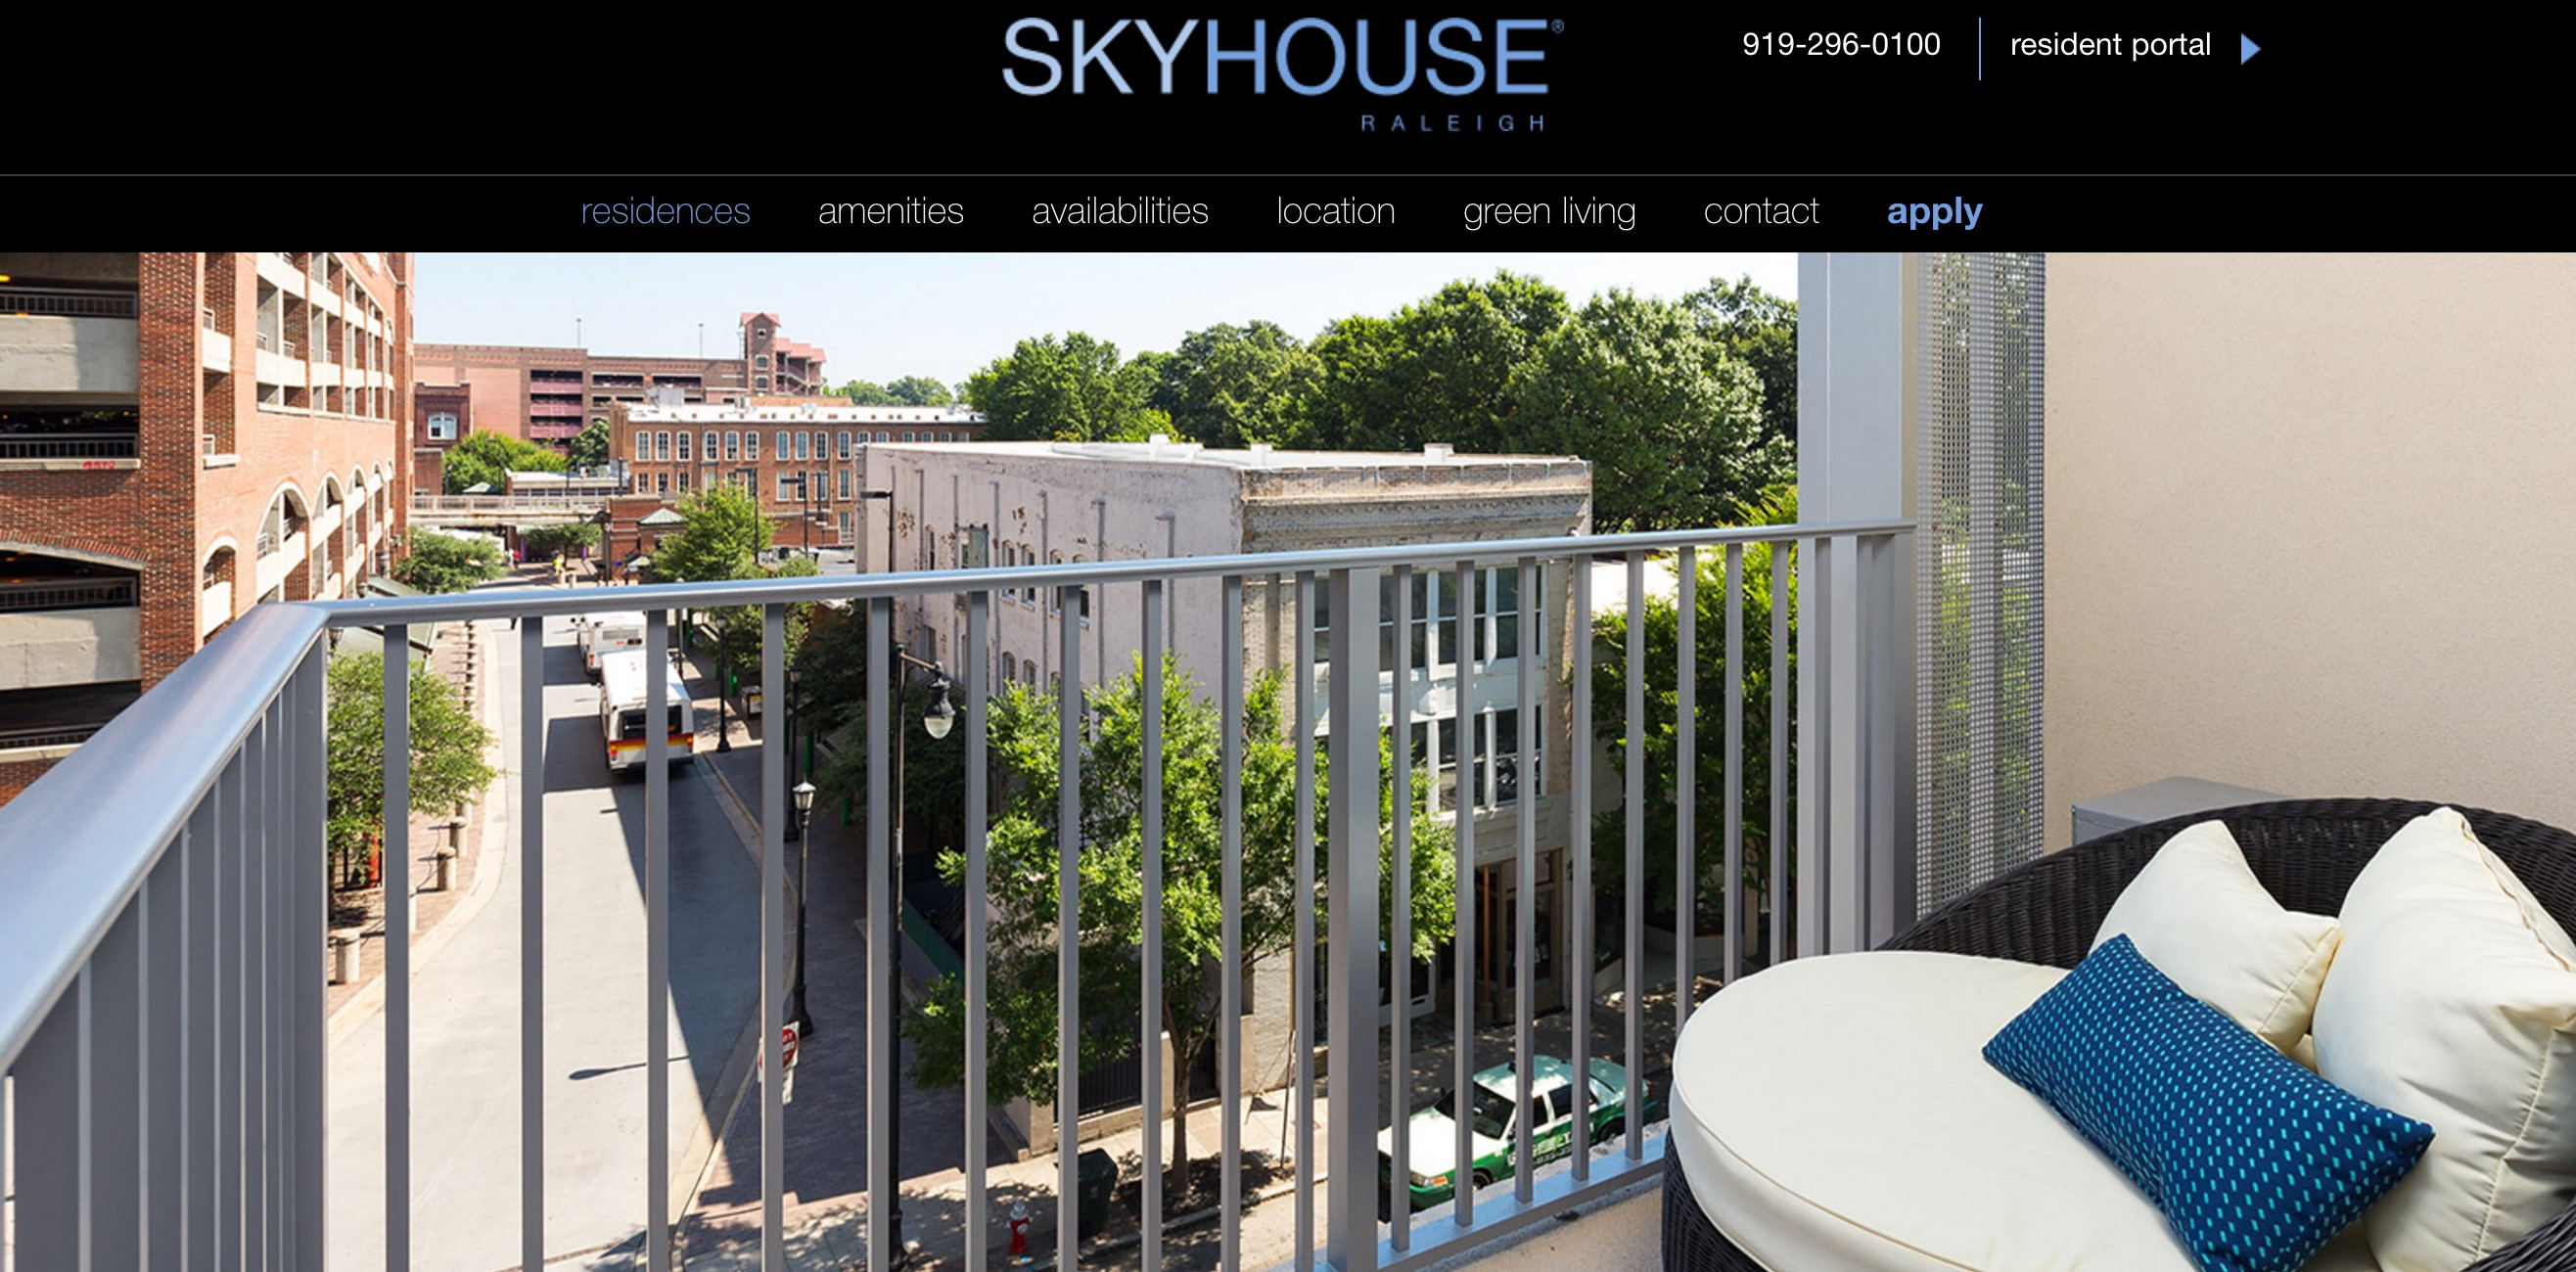 skyhouse raliegh